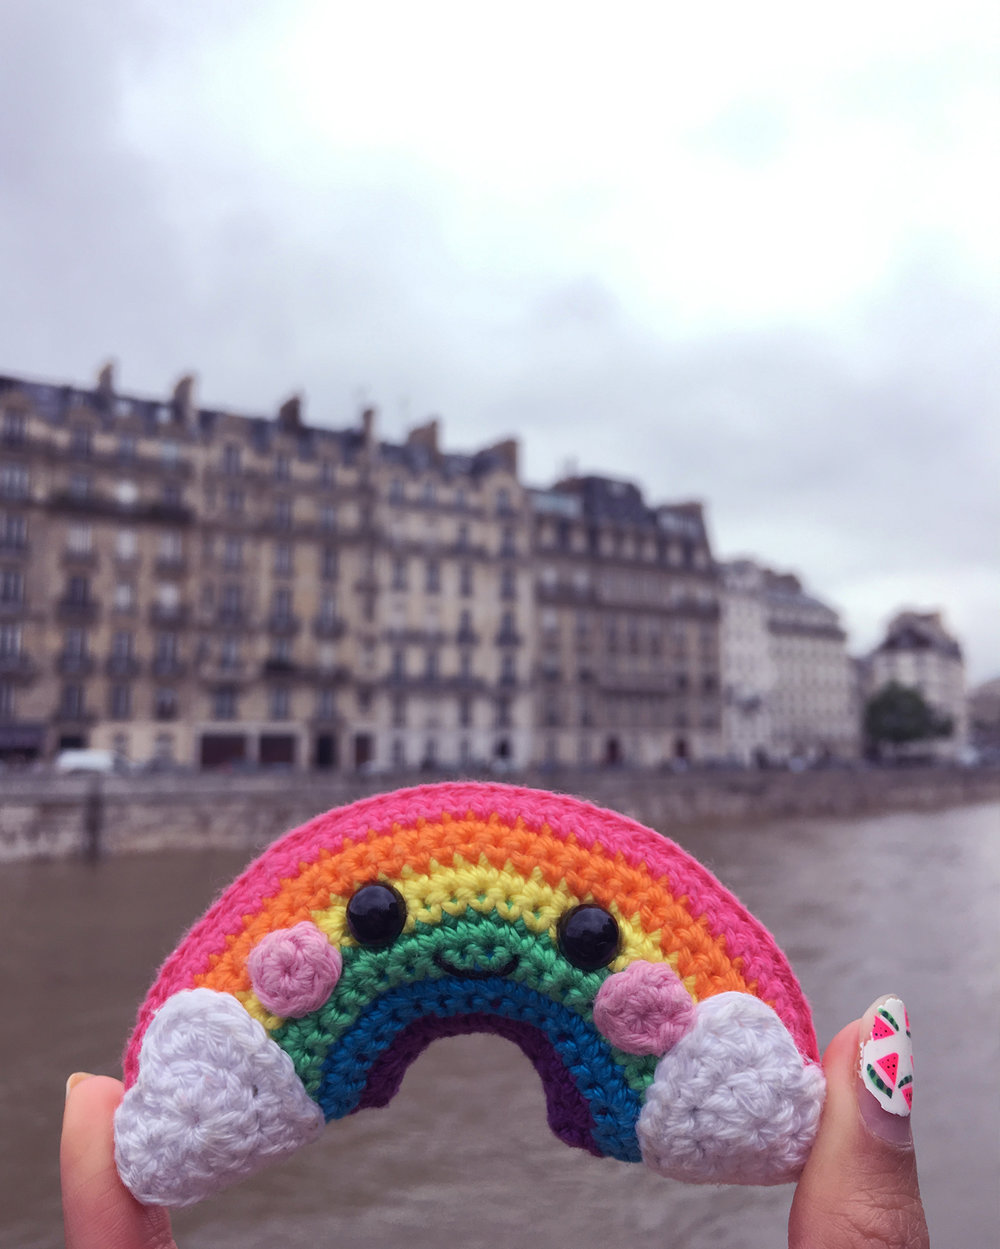 Bring a rainbow wherever you go. It lit up my day even with the worst Parisian flood in 2016 :)